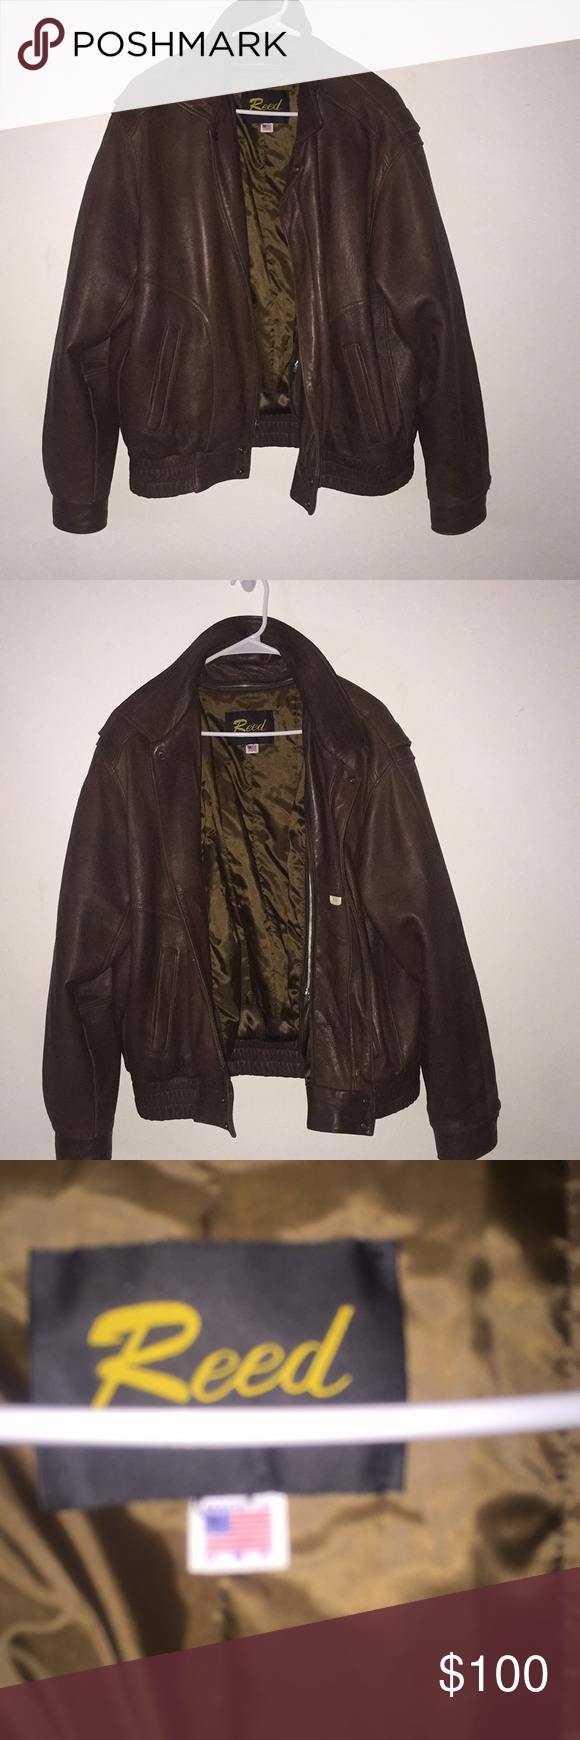 Vintage Reed Leather Jacket 100 Authentic Reed Leather Jacket Brown In Color Really Nice No Tears No Rips Comes Leather Jacket Jackets Brown Leather Jacket [ 1740 x 580 Pixel ]